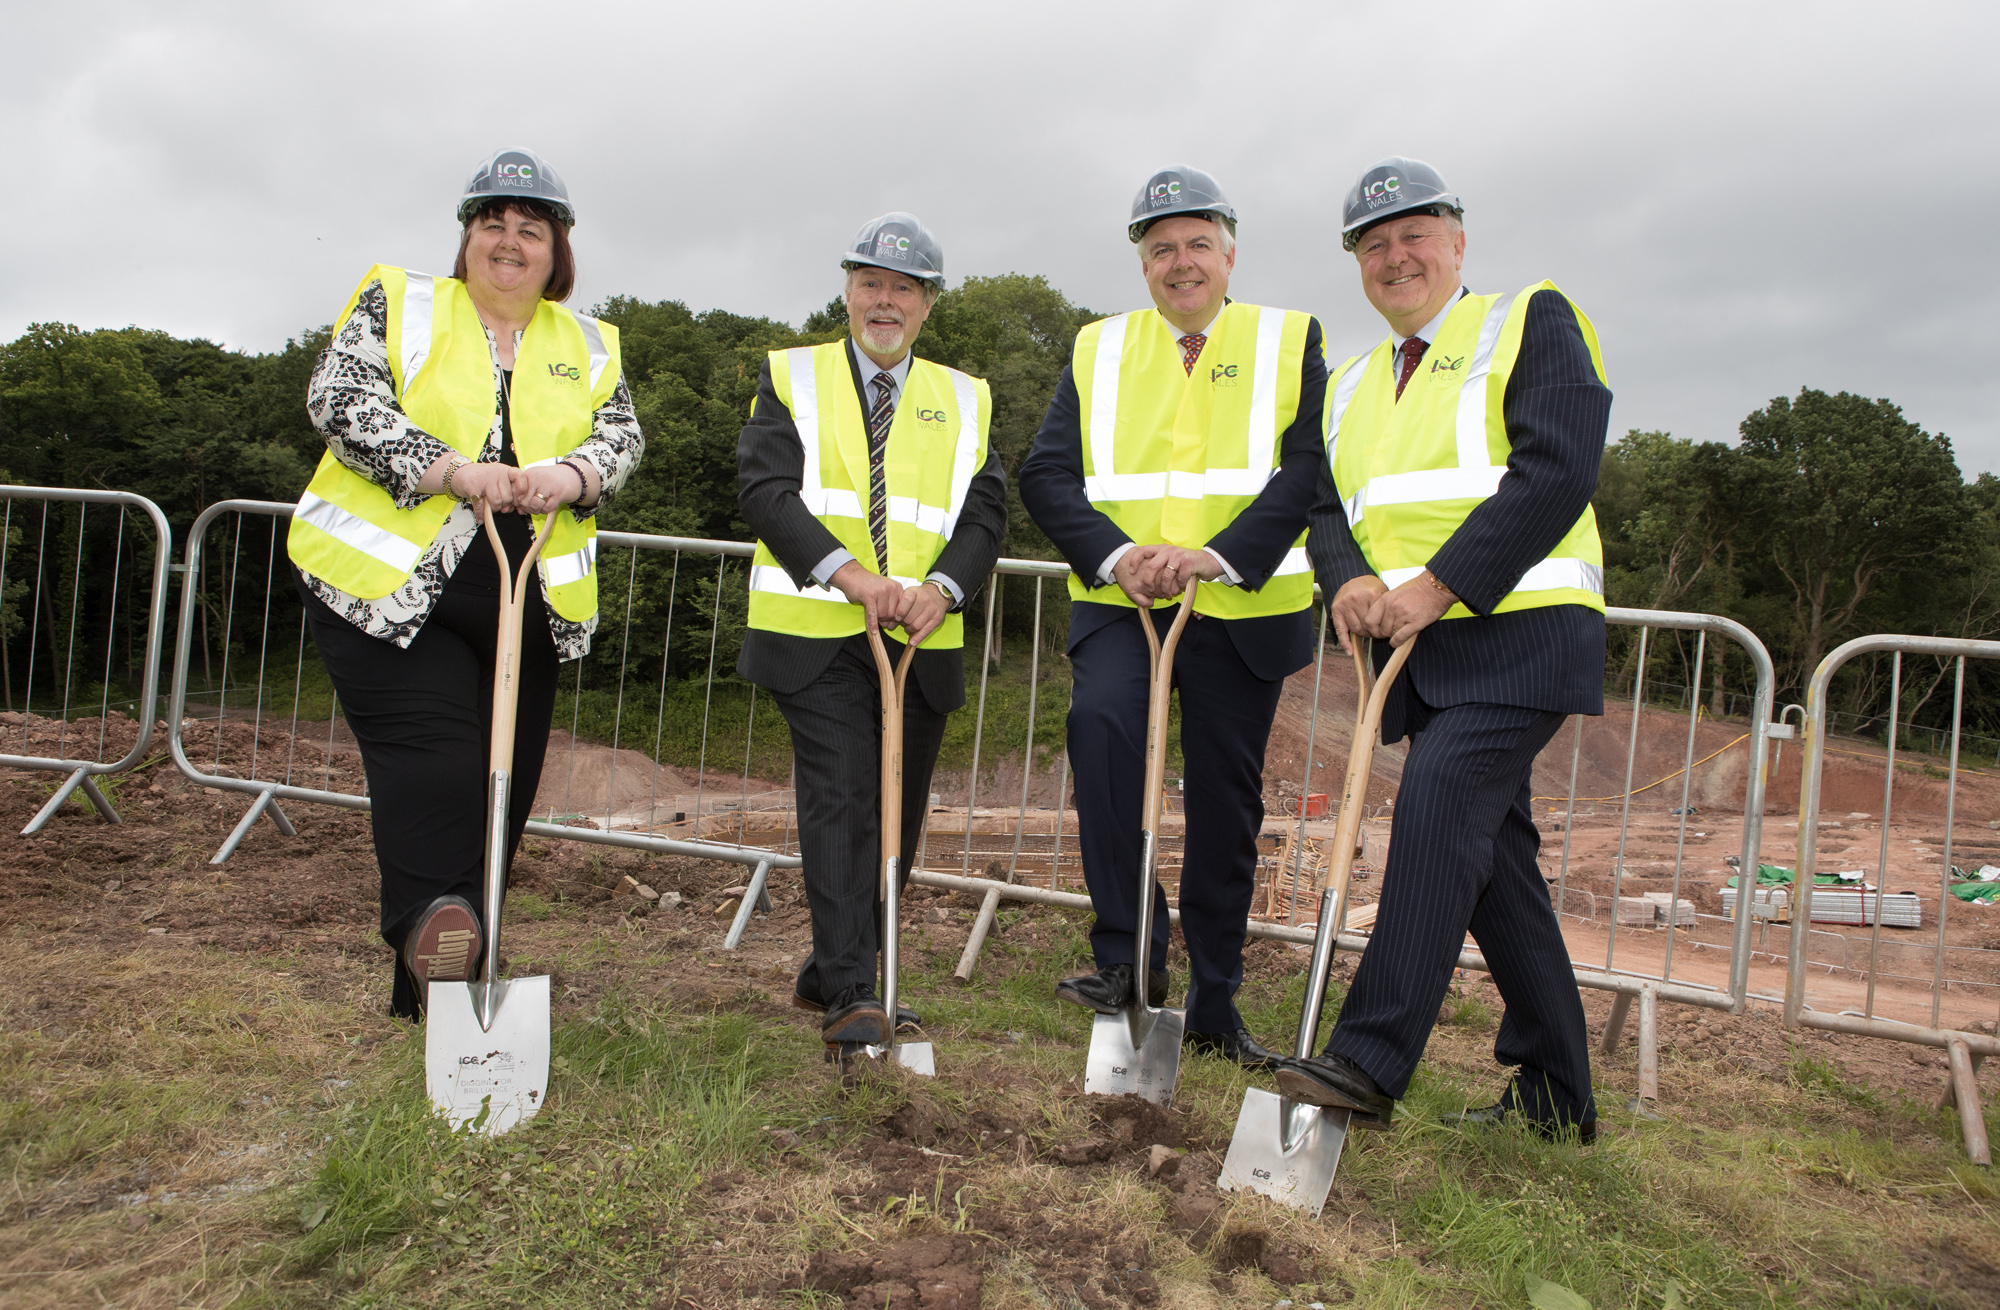 SquareMeal Venues and Events newsletter 29 June 2017 - ICC Wales Groundbreaking